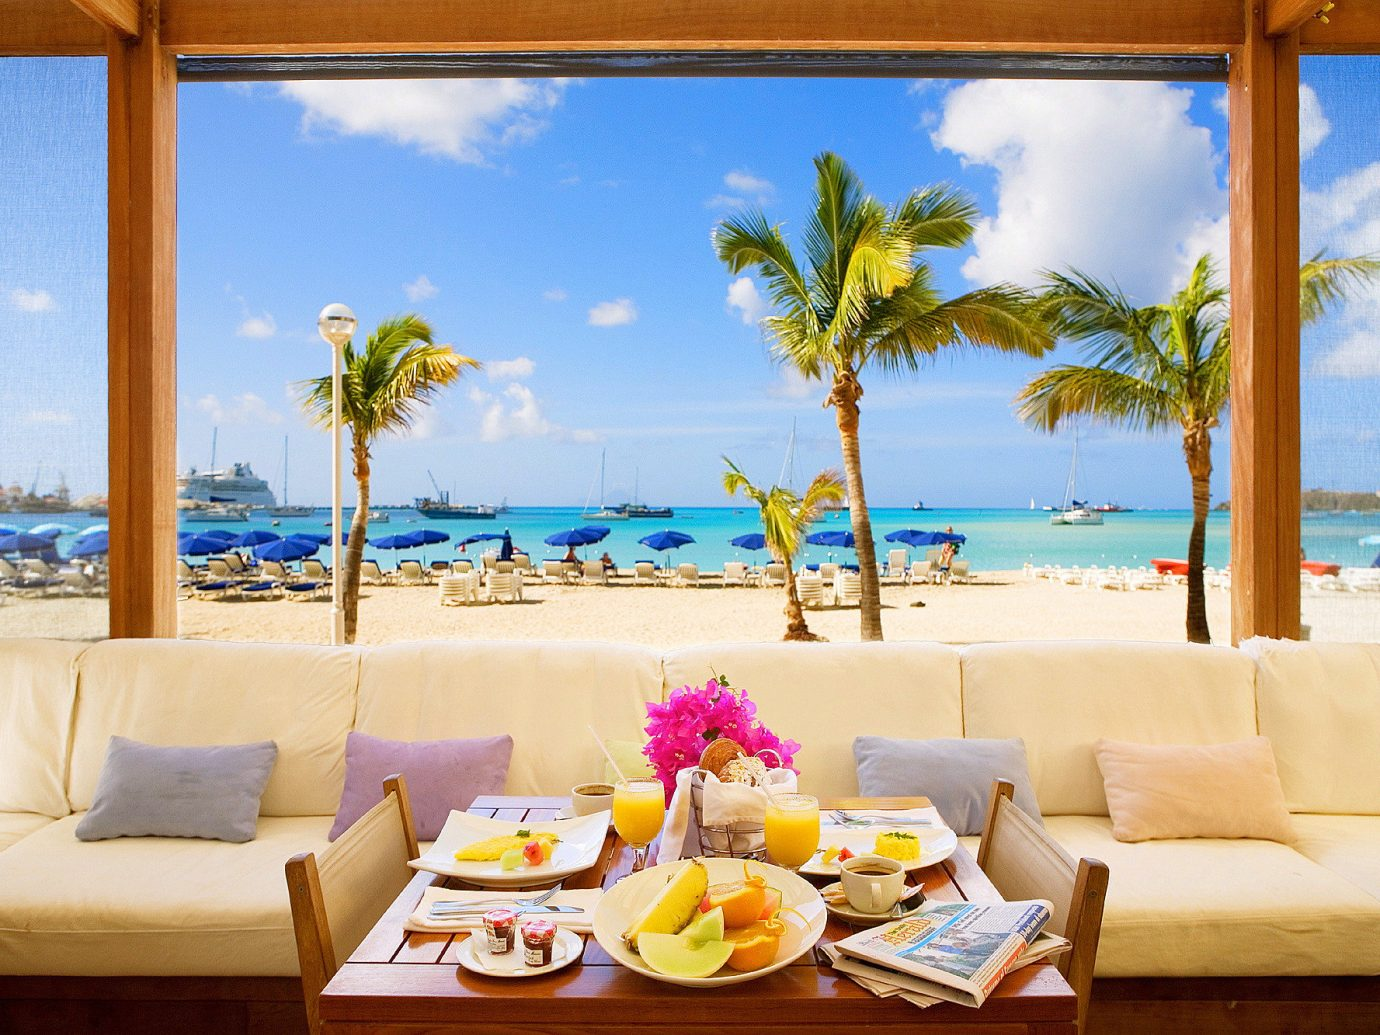 Hotels table window leisure vacation indoor caribbean Living Resort Beach estate Ocean home Sea swimming pool Villa furniture decorated